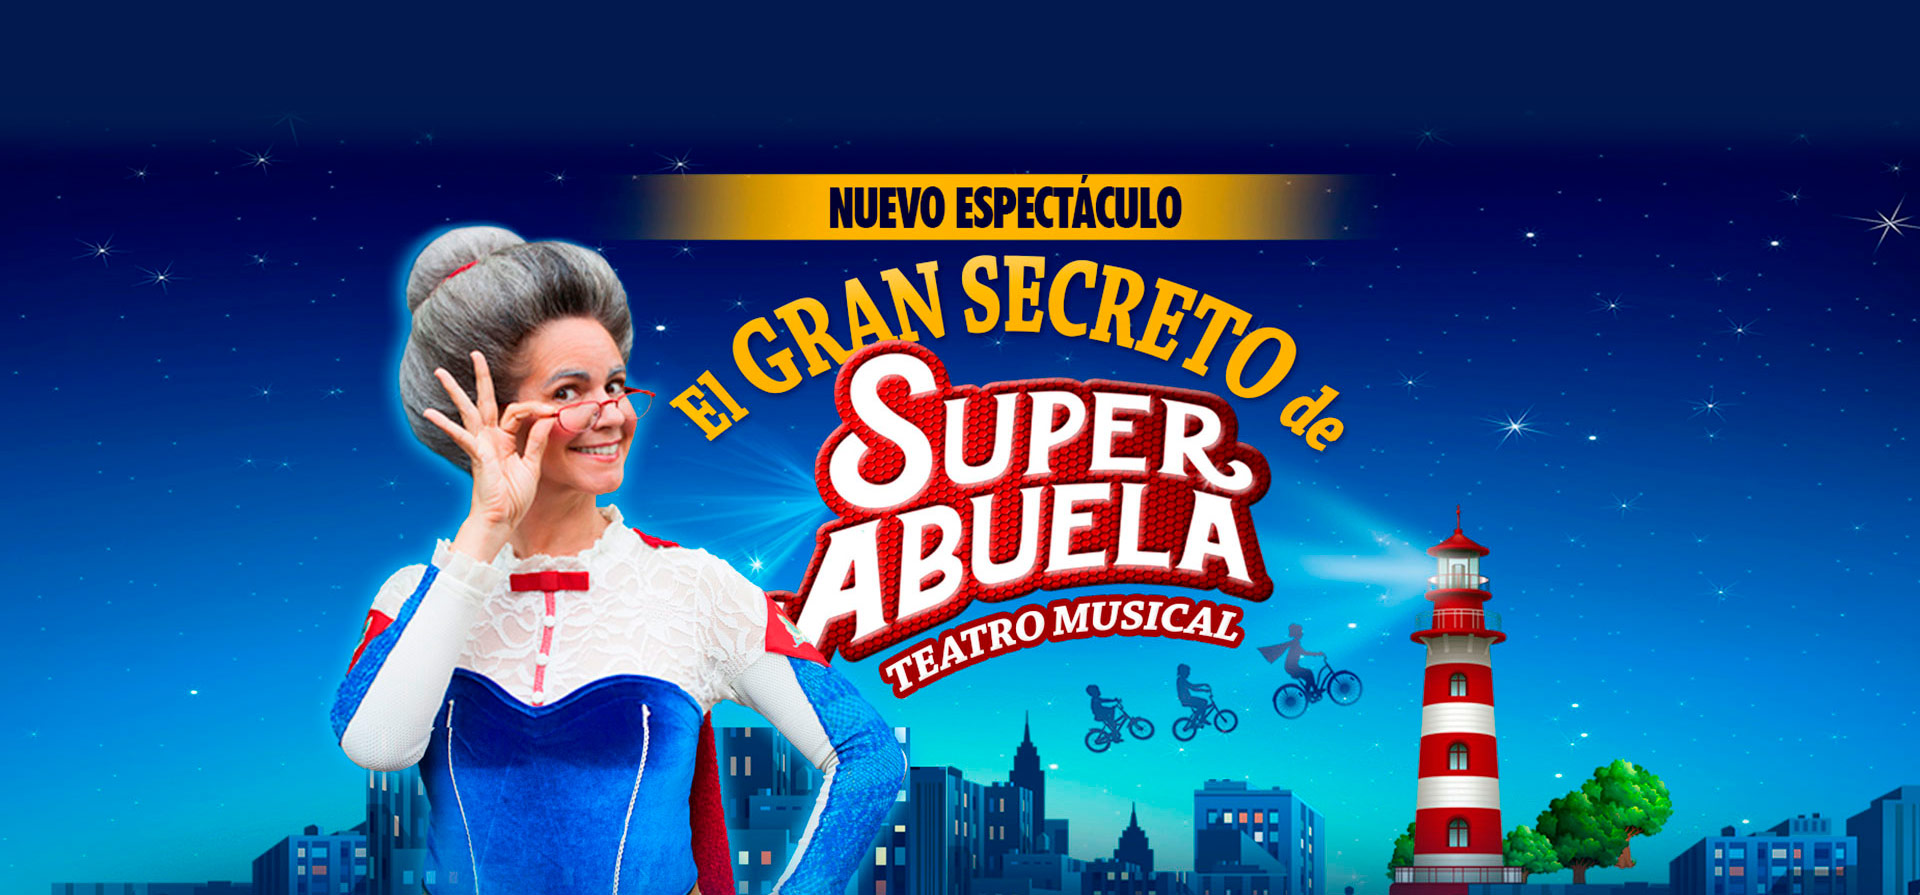 Teatro Musical SuperAbuela